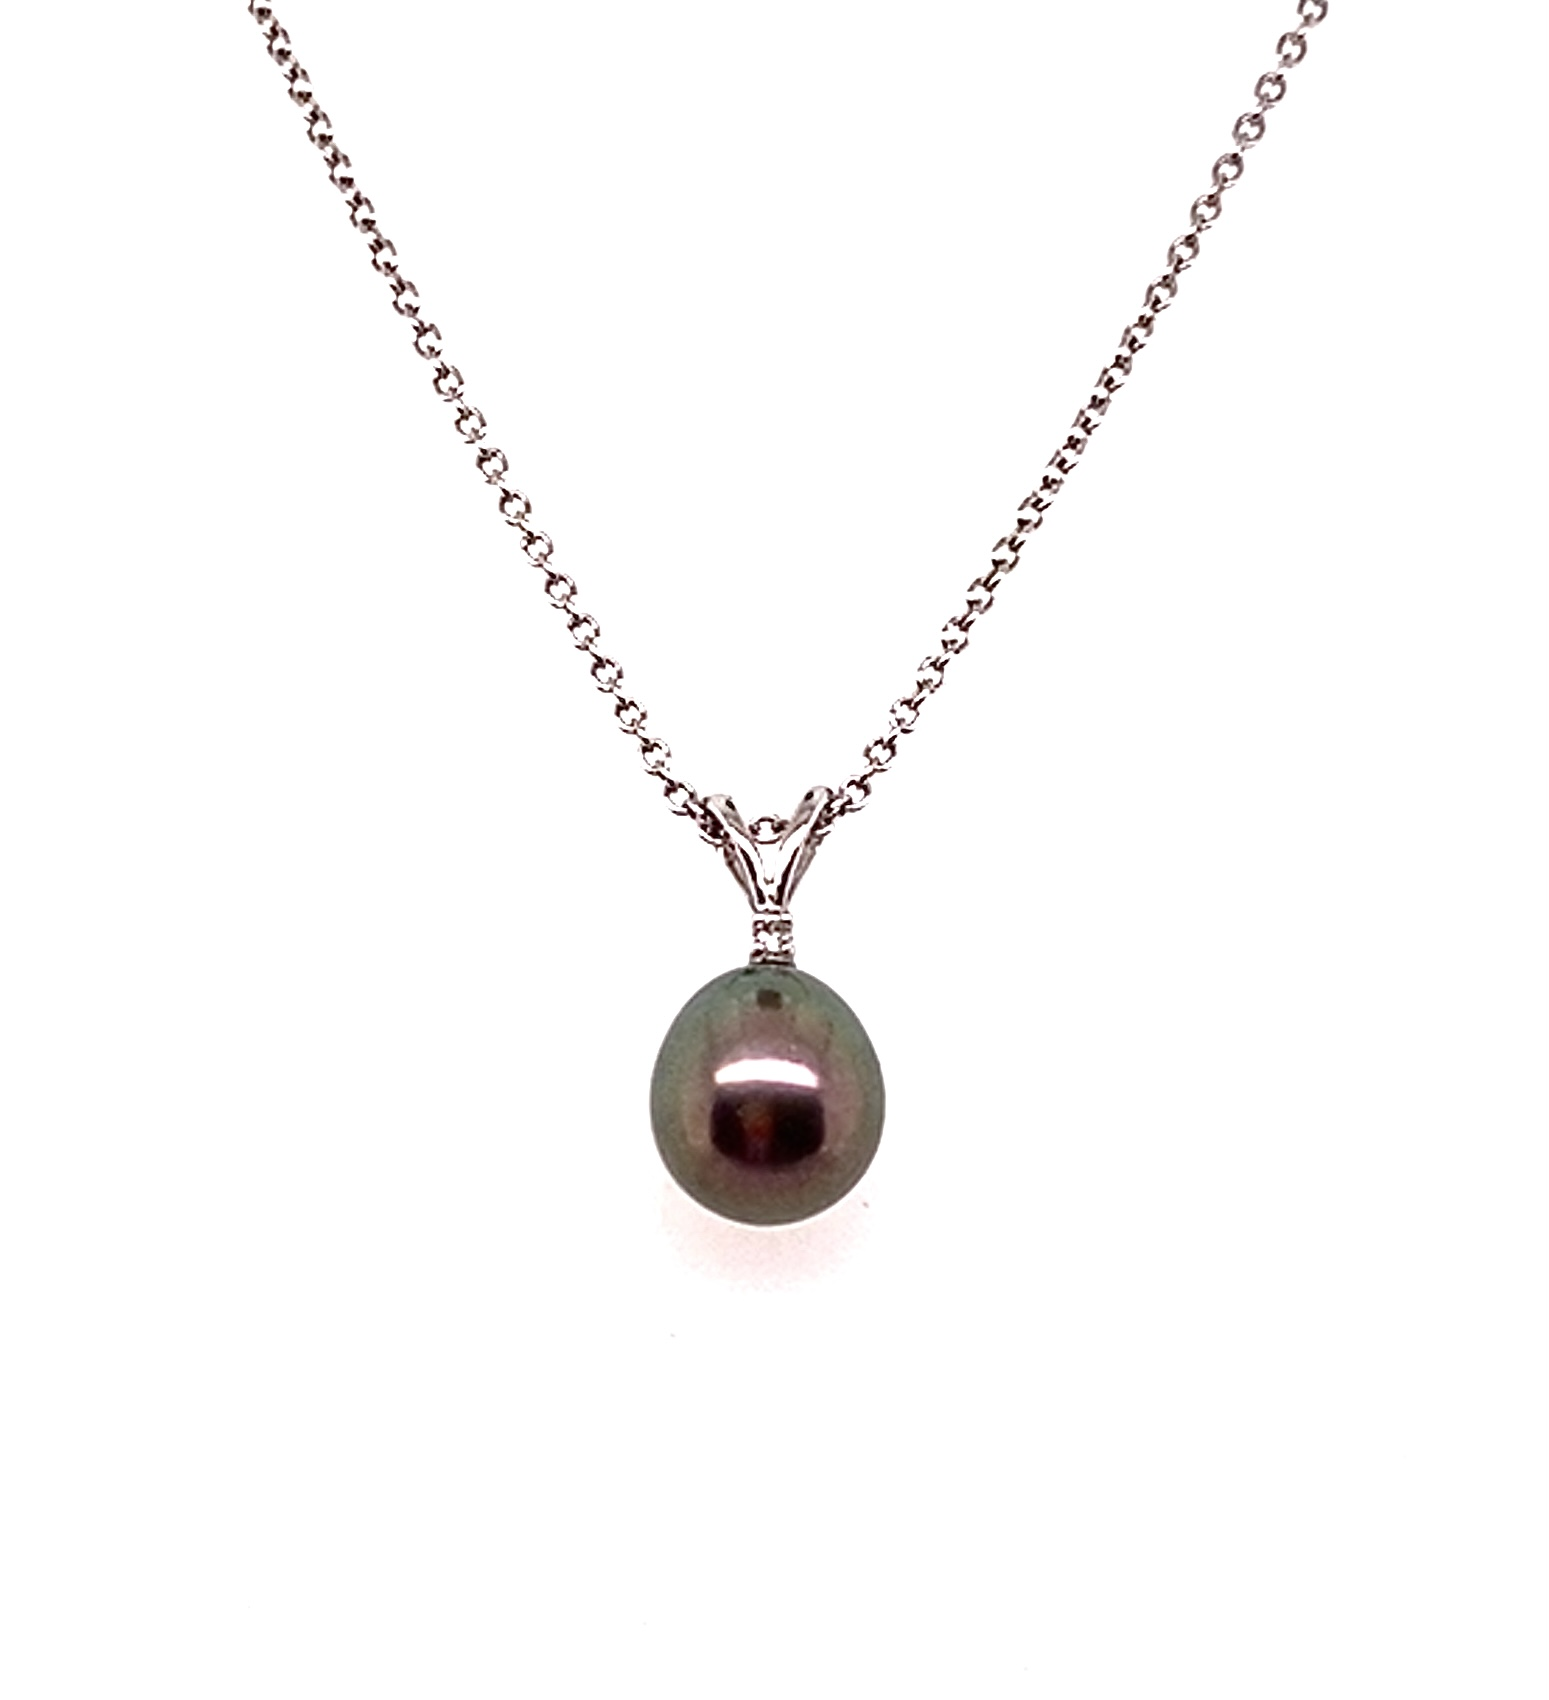 A 9ct White Gold Freshwater Black Pearl Pendant